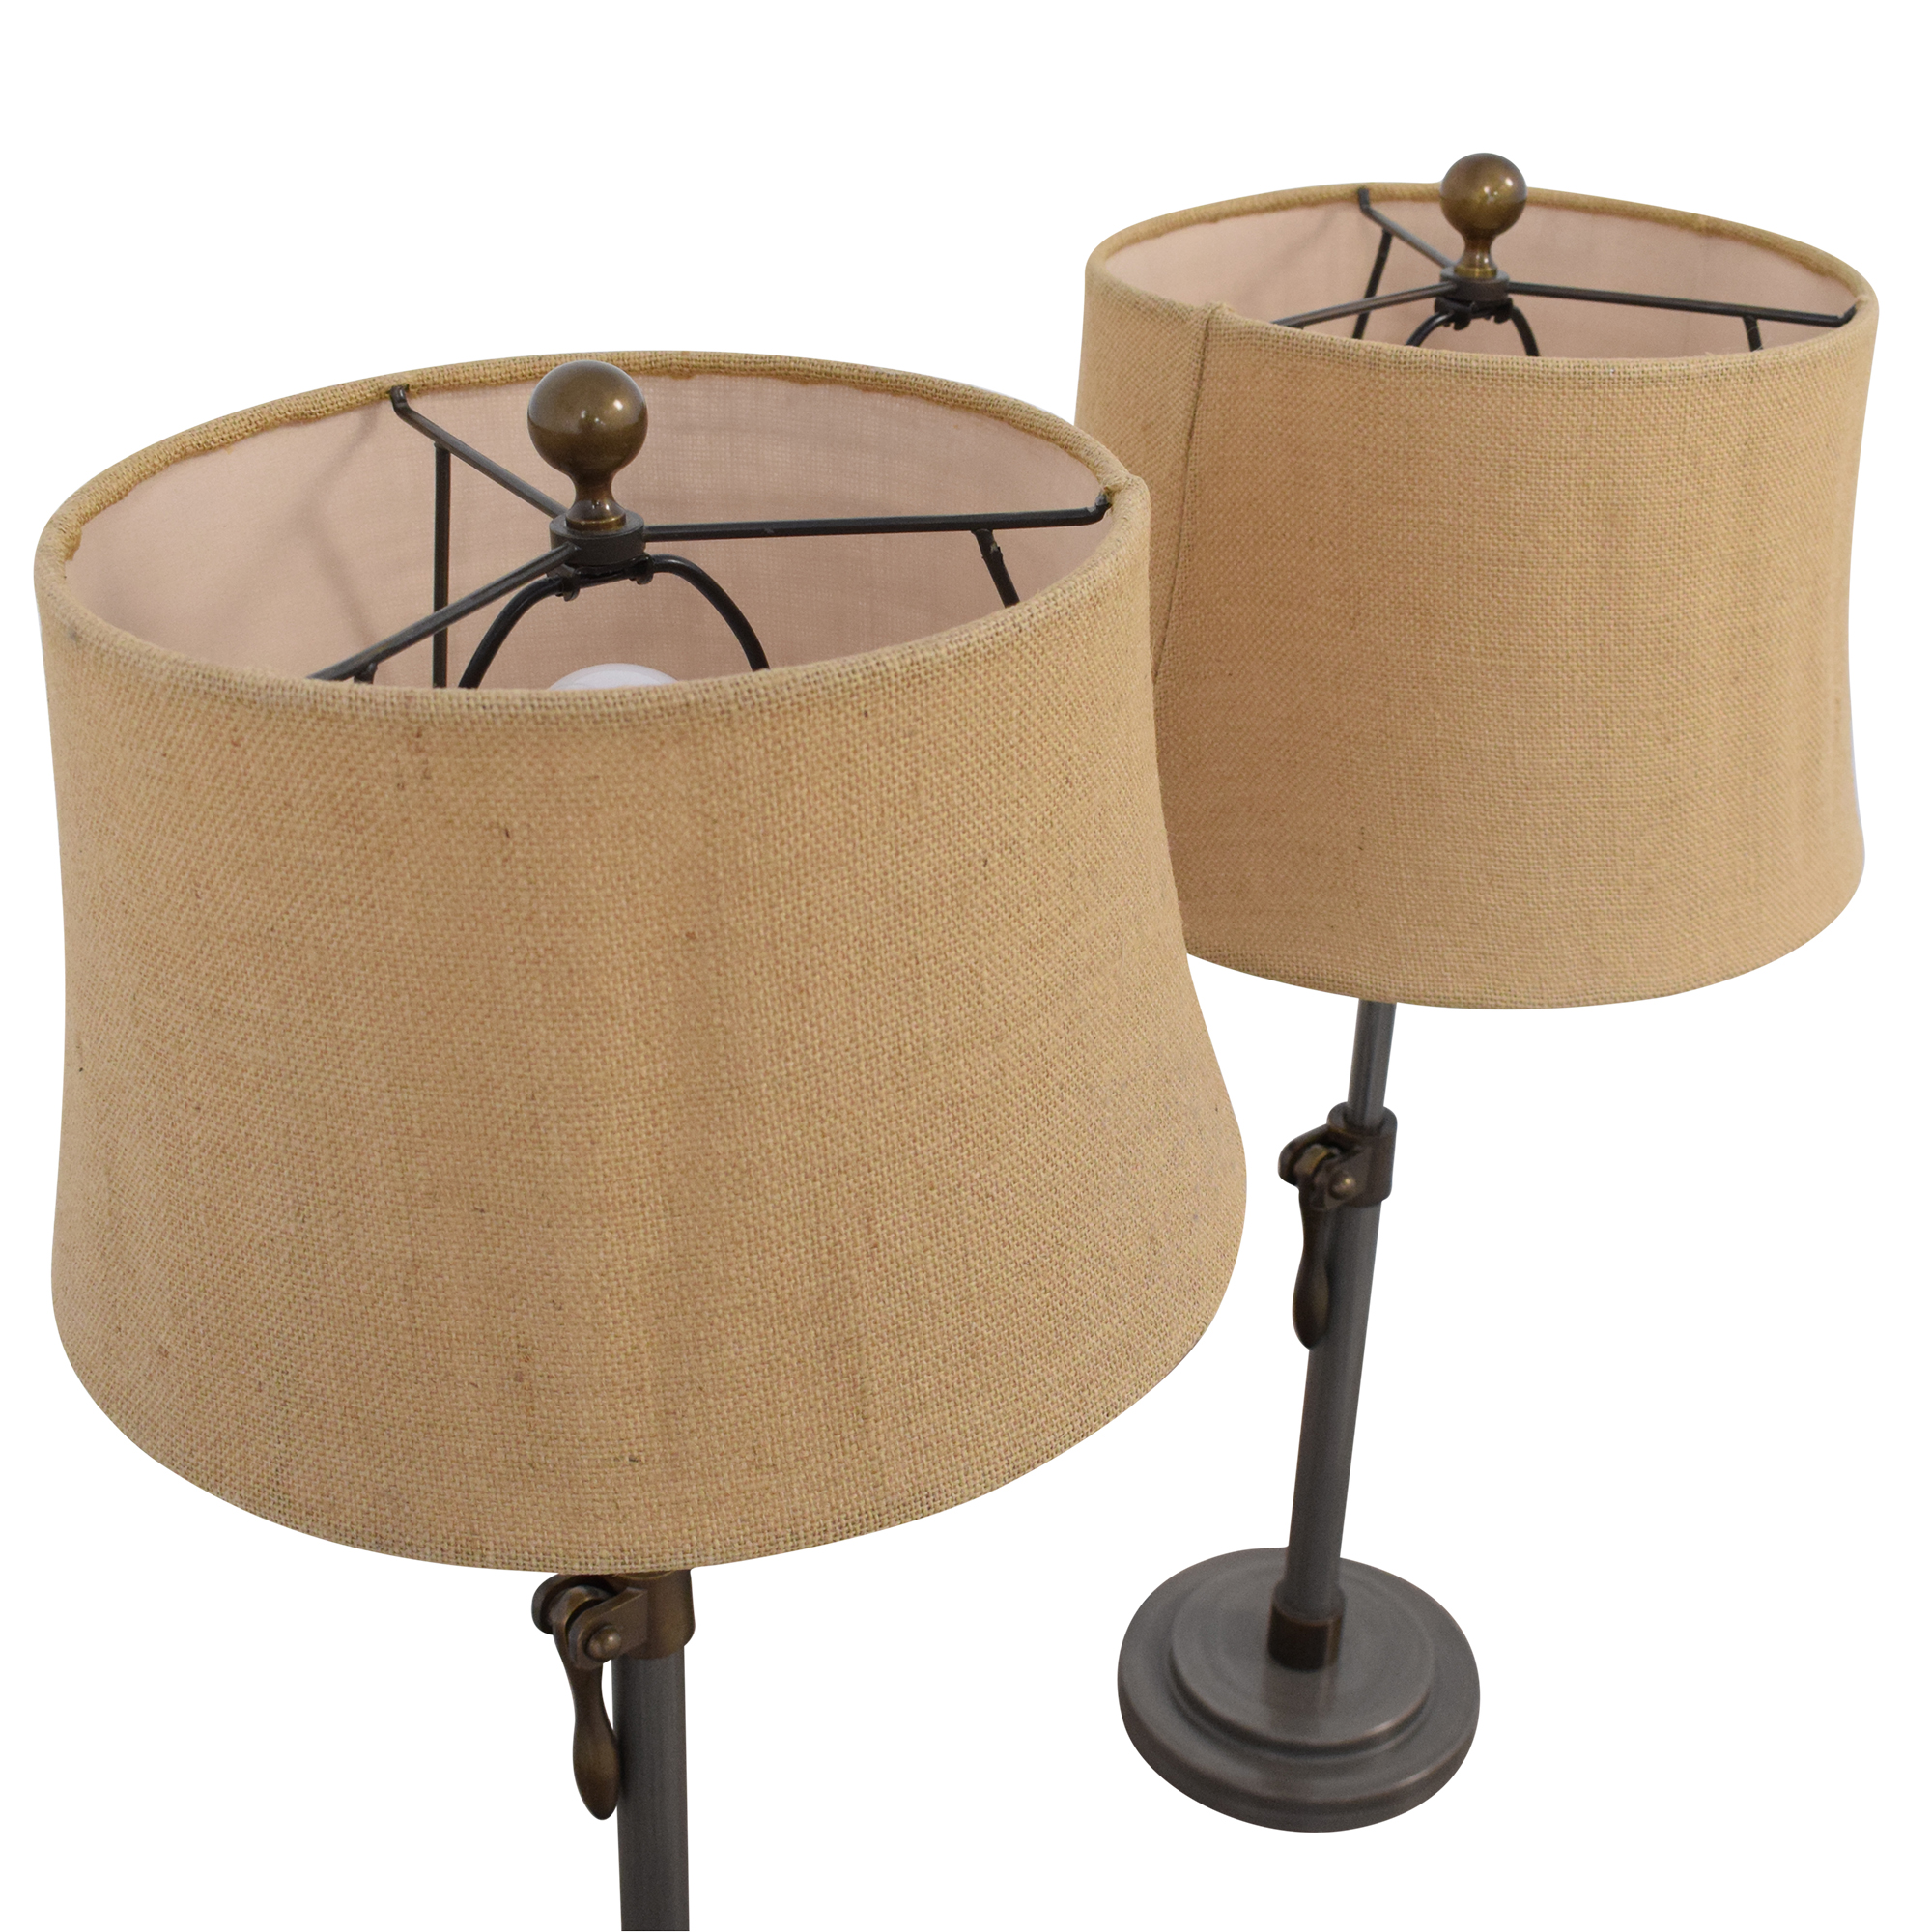 Pottery Barn Pottery Barn Sutter Adjustable Lever Table Lamps grey and beige